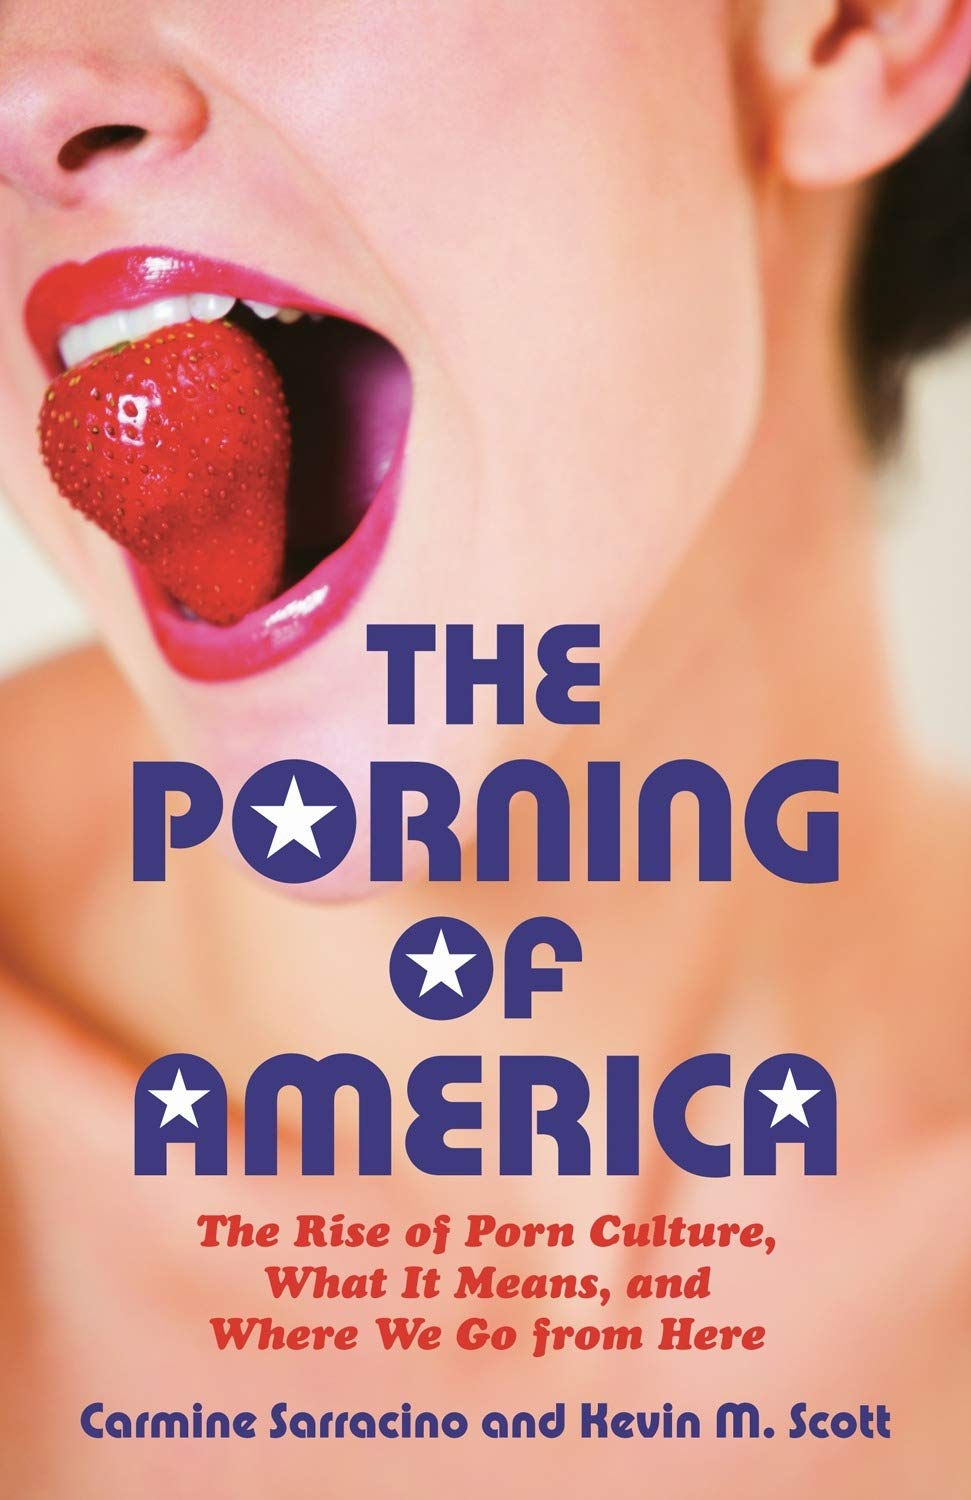 The Porning of America: The Rise of Porn Culture, What It Means, and Where We Go from Here ebook